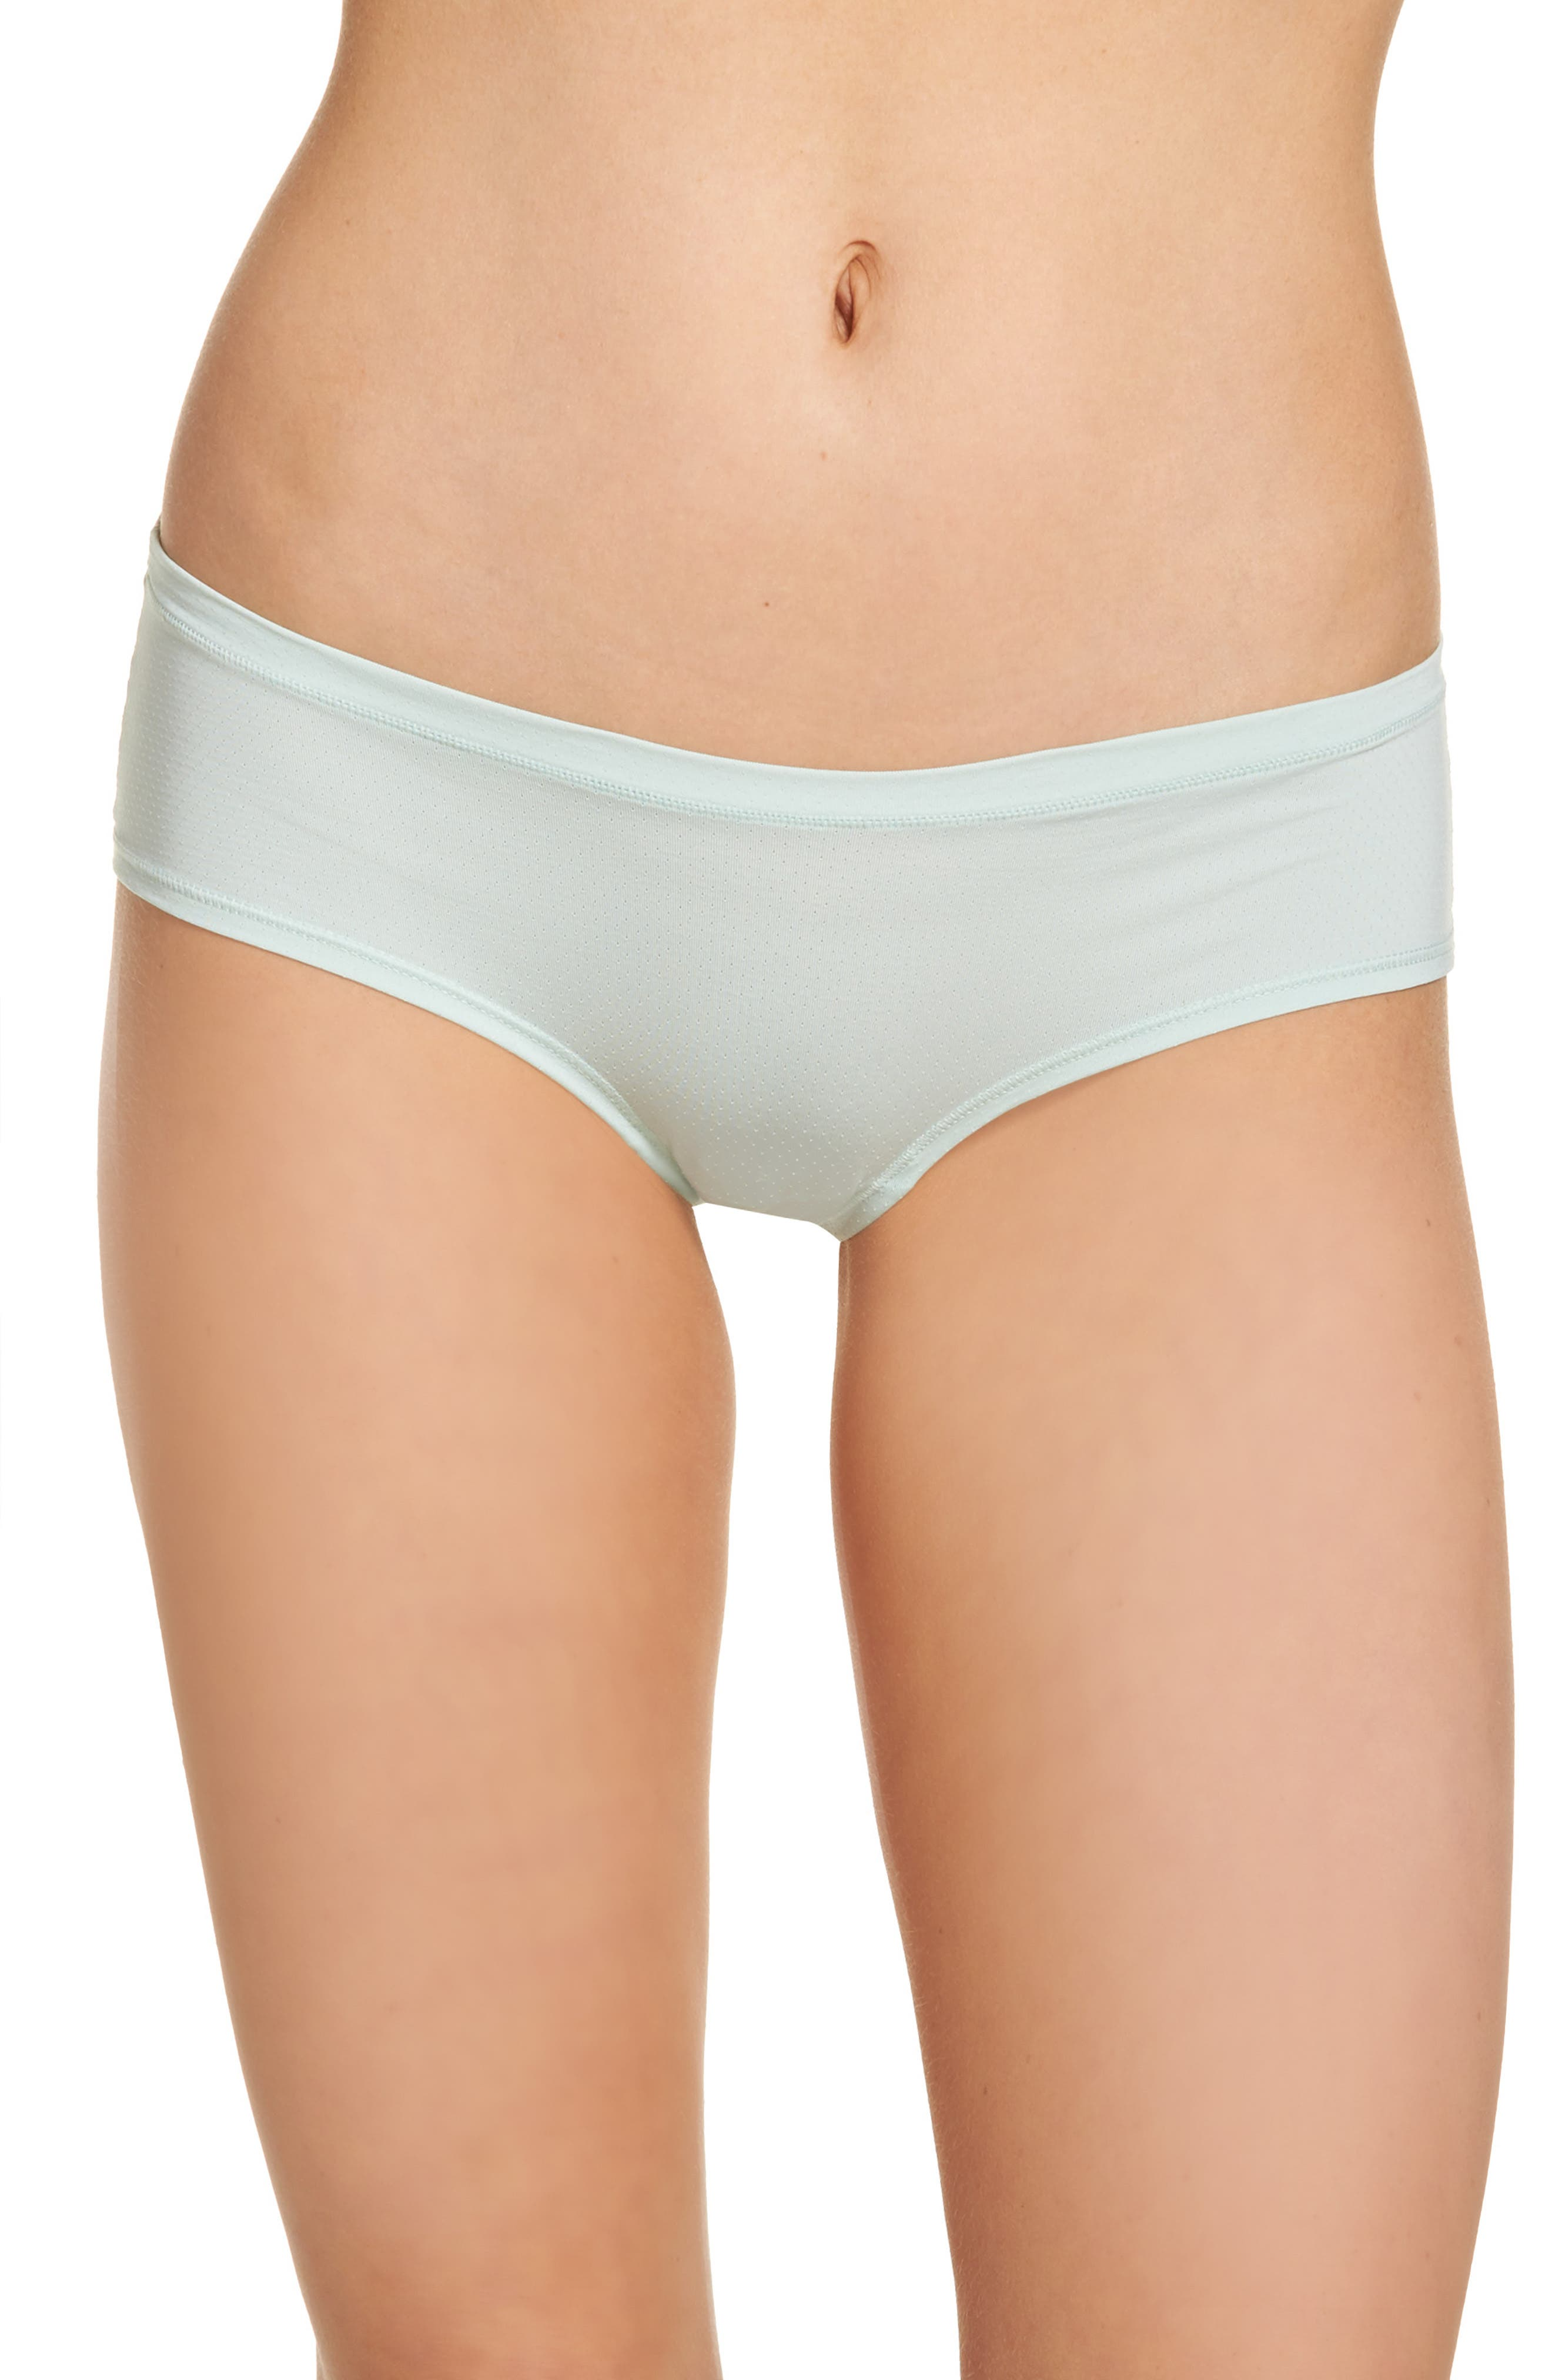 Alternate Image 1 Selected - Zella Body Active Mesh Hipster Briefs (3 for $33)